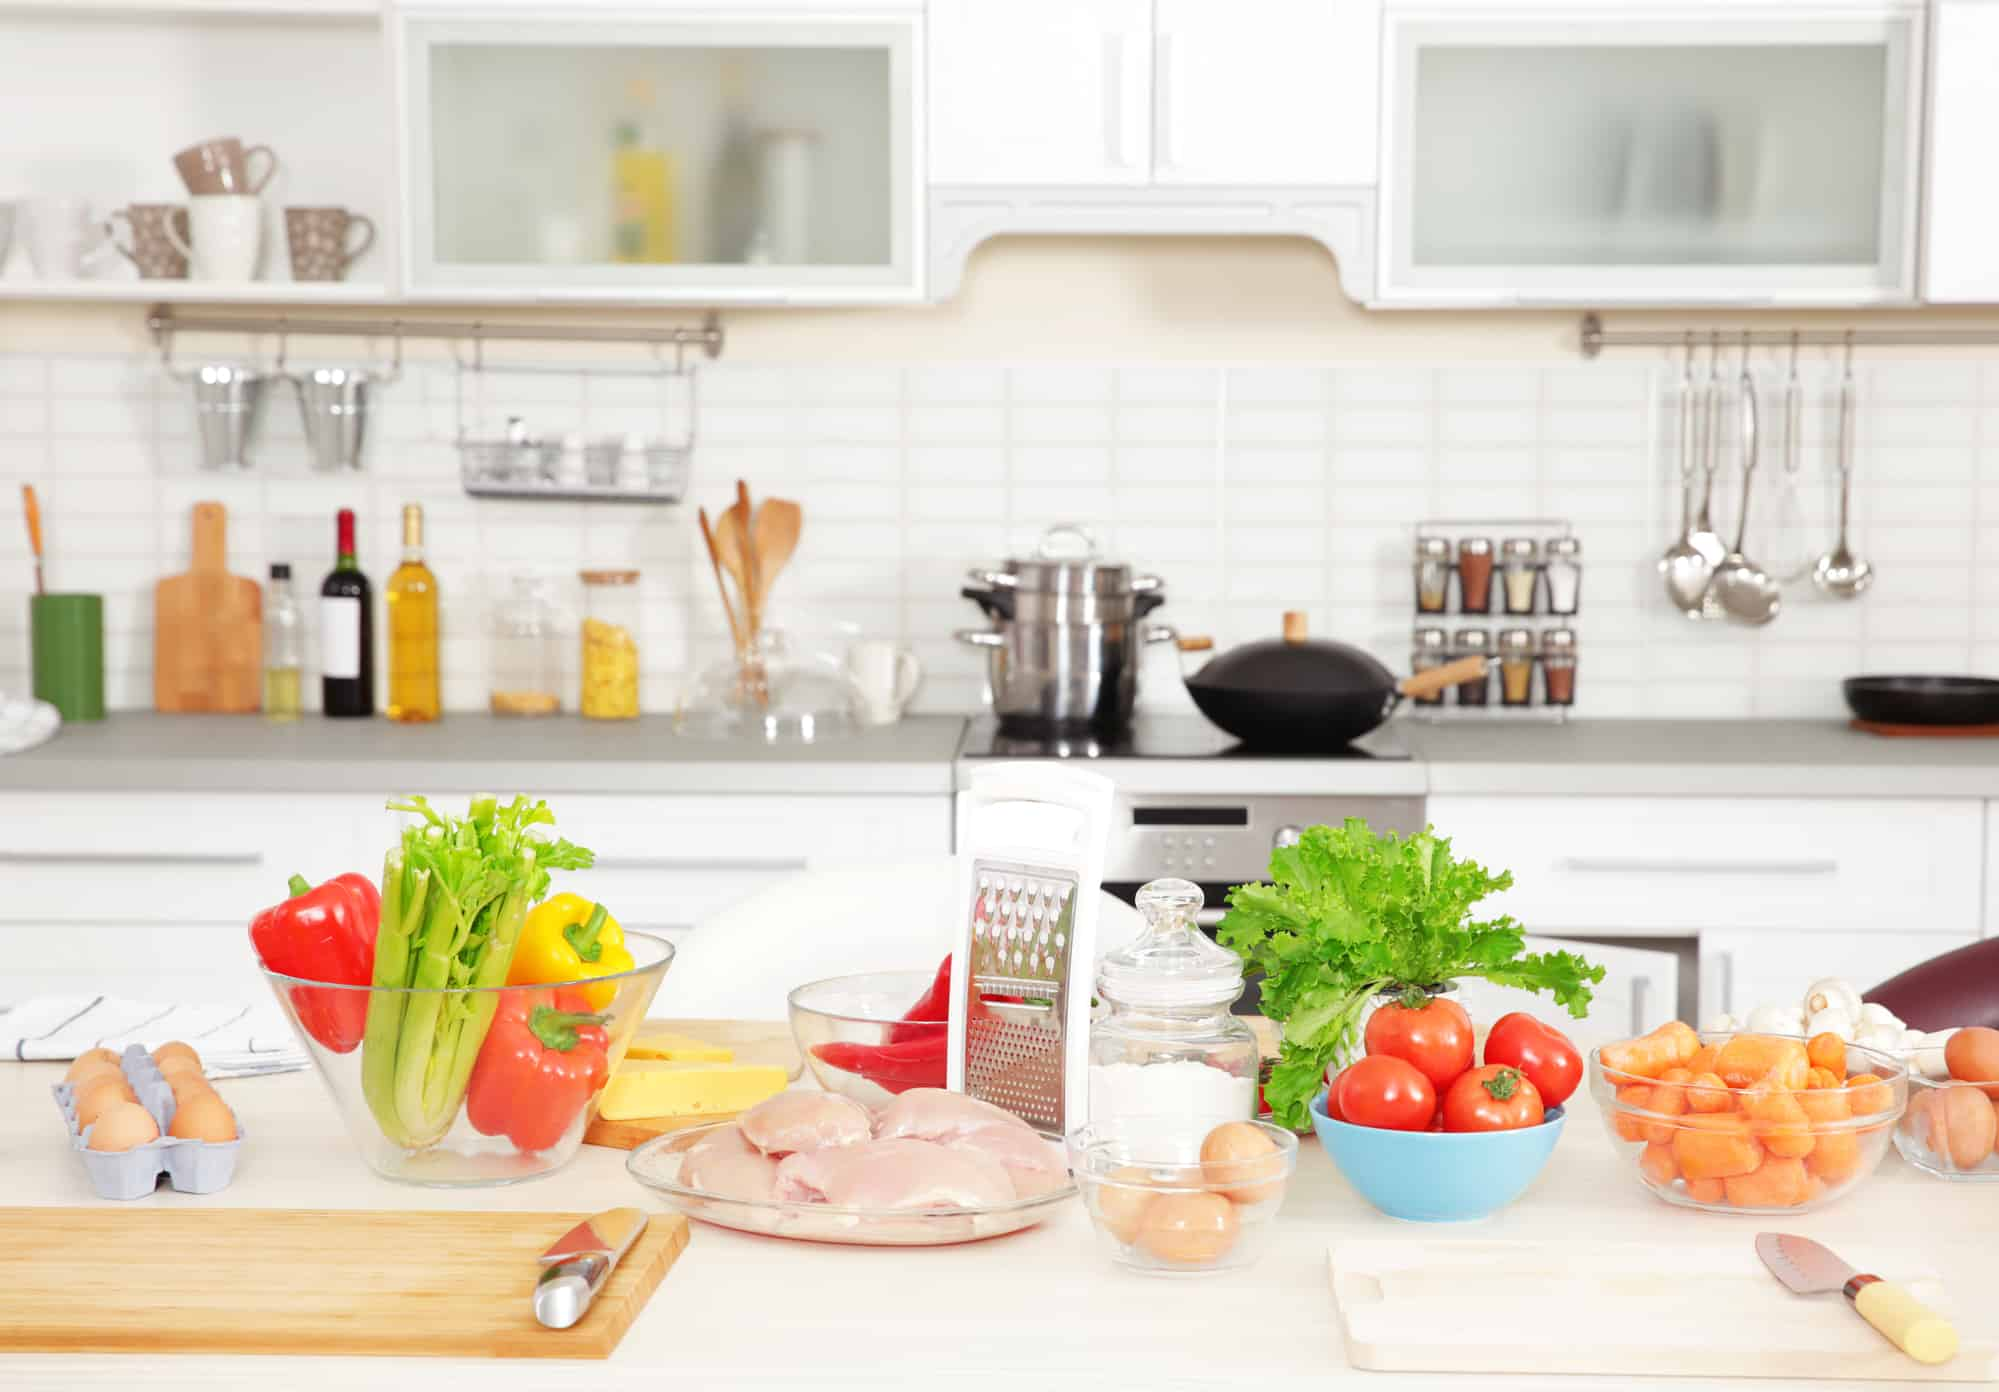 Eco-friendly kitchen gadgets that help turn a kitchen into an environmentally friendly oasis.